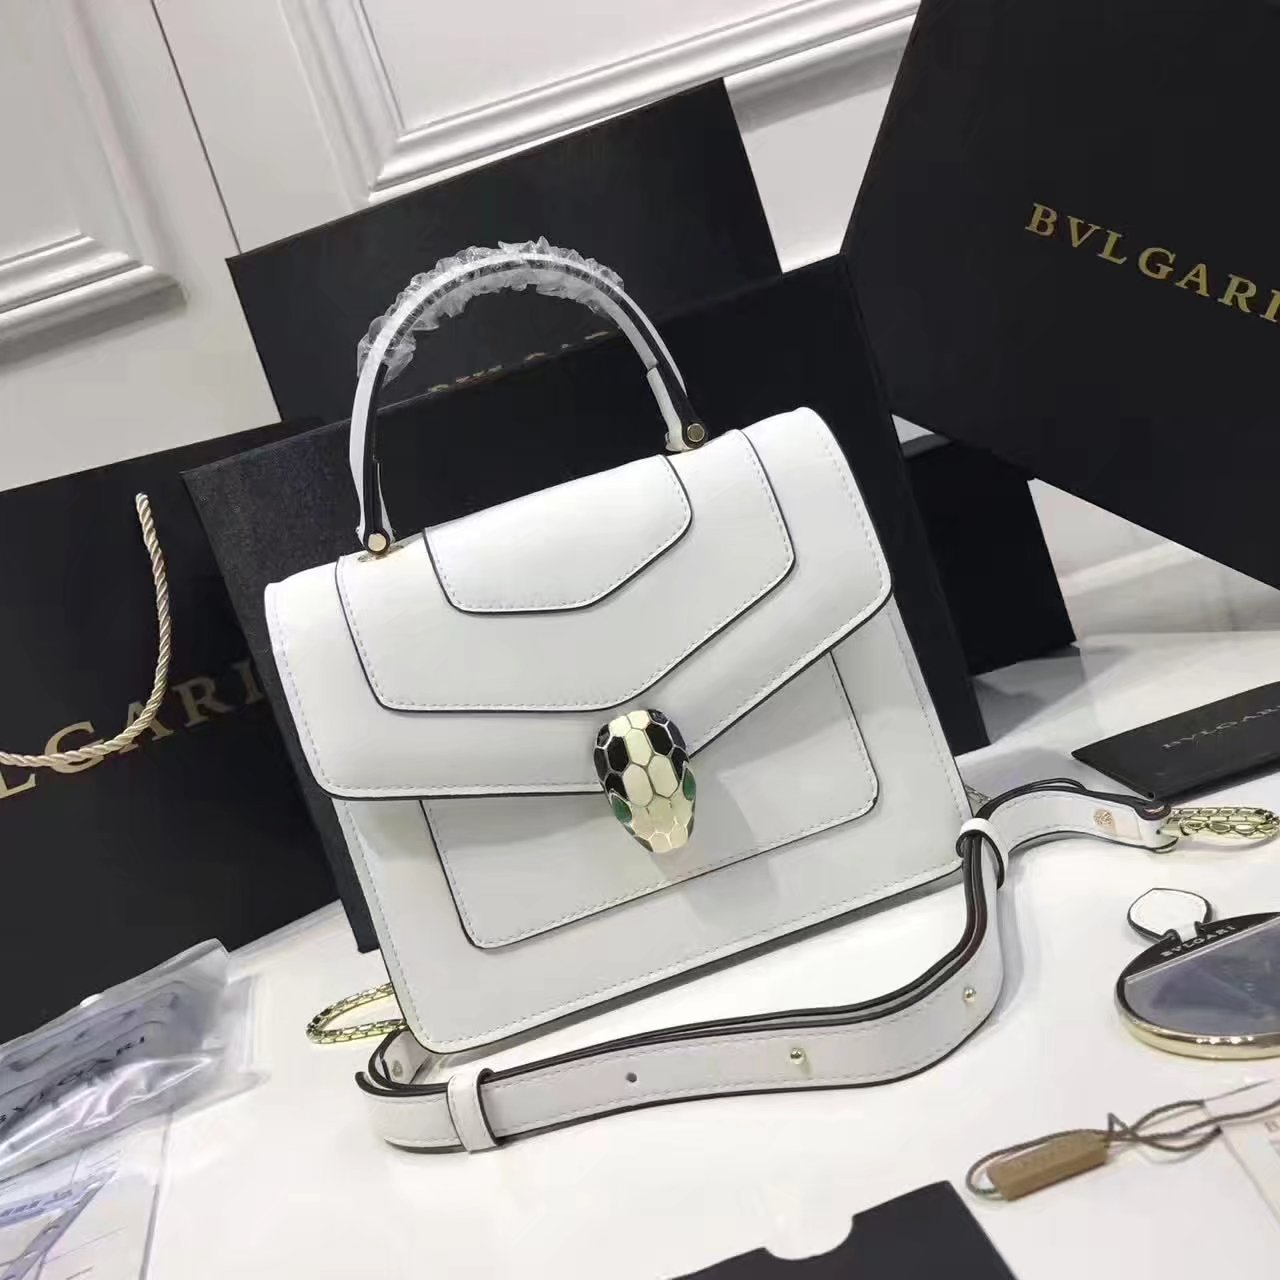 Bulgari Serpenti Forever Flap Cover Bag White With Malachite Eyes